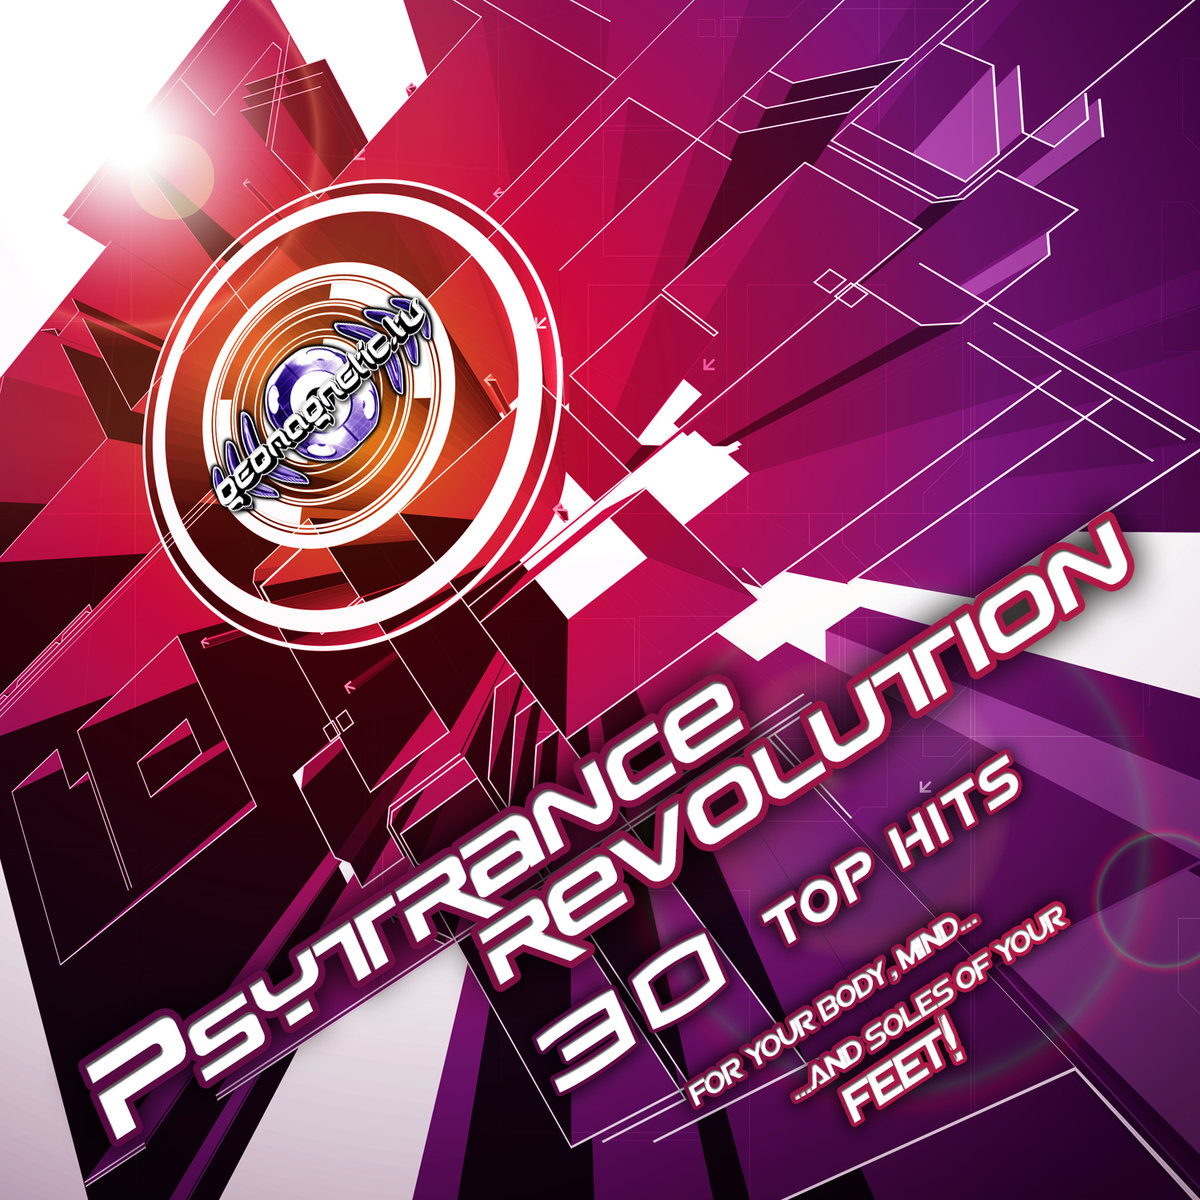 Sentinel - Dreamcatcher @ 'Various Artists - Psytrance Revolution (30 Top Hits)' album (electronic, goa)